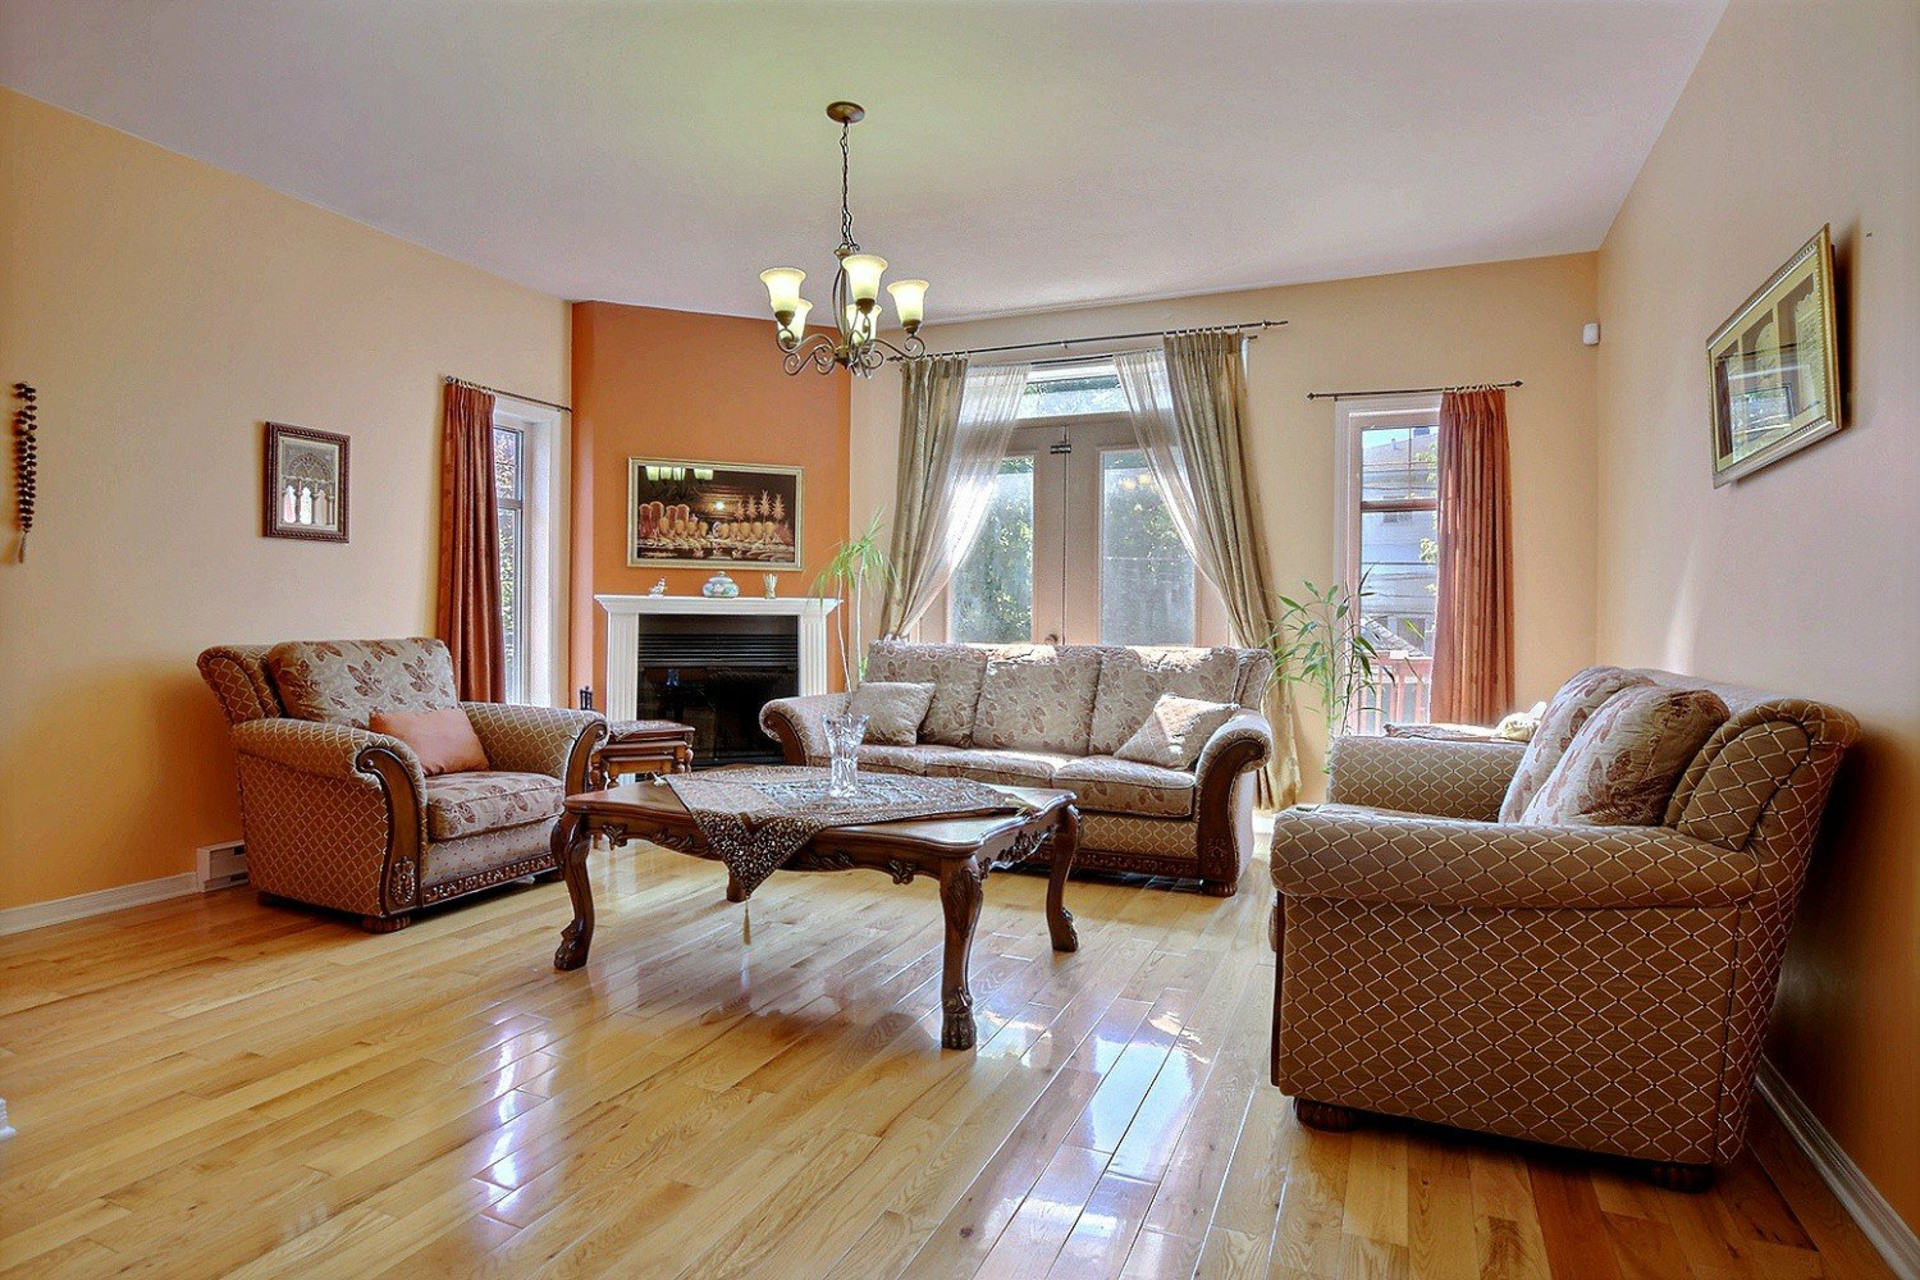 image 3 - House For sale Brossard - 6 rooms